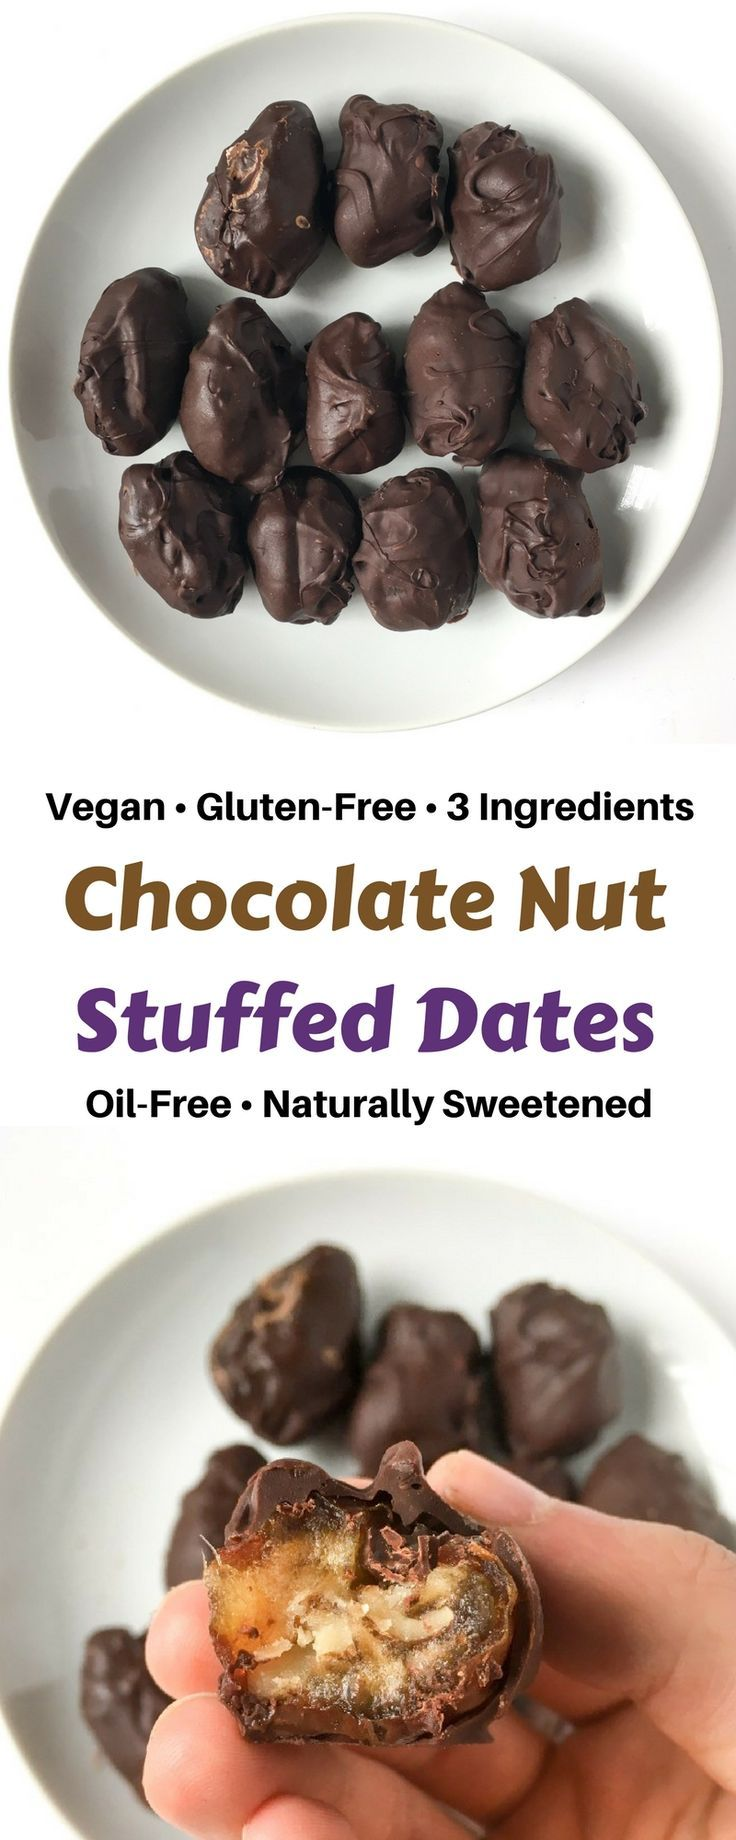 Chocolate nut stuffed dates made with 3 ingredients, in 30 minutes or less of prep time and are vegan, oil-free, refined sugar-free and a nutritious treat! Chocolate shell on the outside and gooey date with a crunchy nut on the inside!